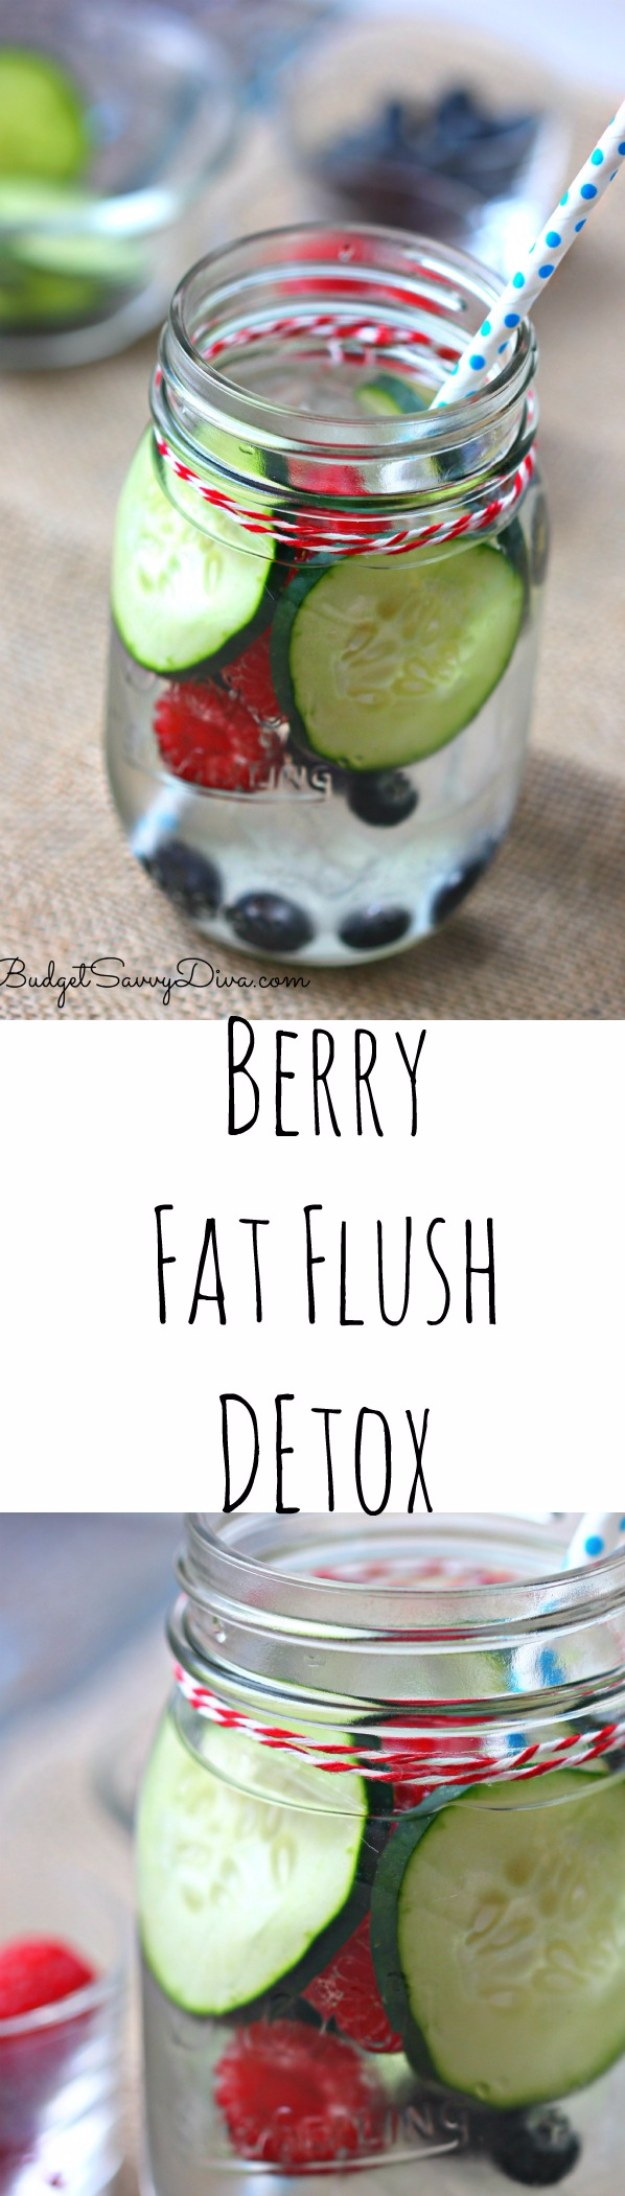 DIY Detox Recipes, Ideas and Tips - Berry Fat Flush Detox Recipe - How to Detox Your Body, Brain and Skin for Health and Weight Loss. Detox Drinks, Waters, Teas, Wraps, Soup, Masks and Skincare Products You Can Make At Home http://diyjoy.com/diy-detox-ideas